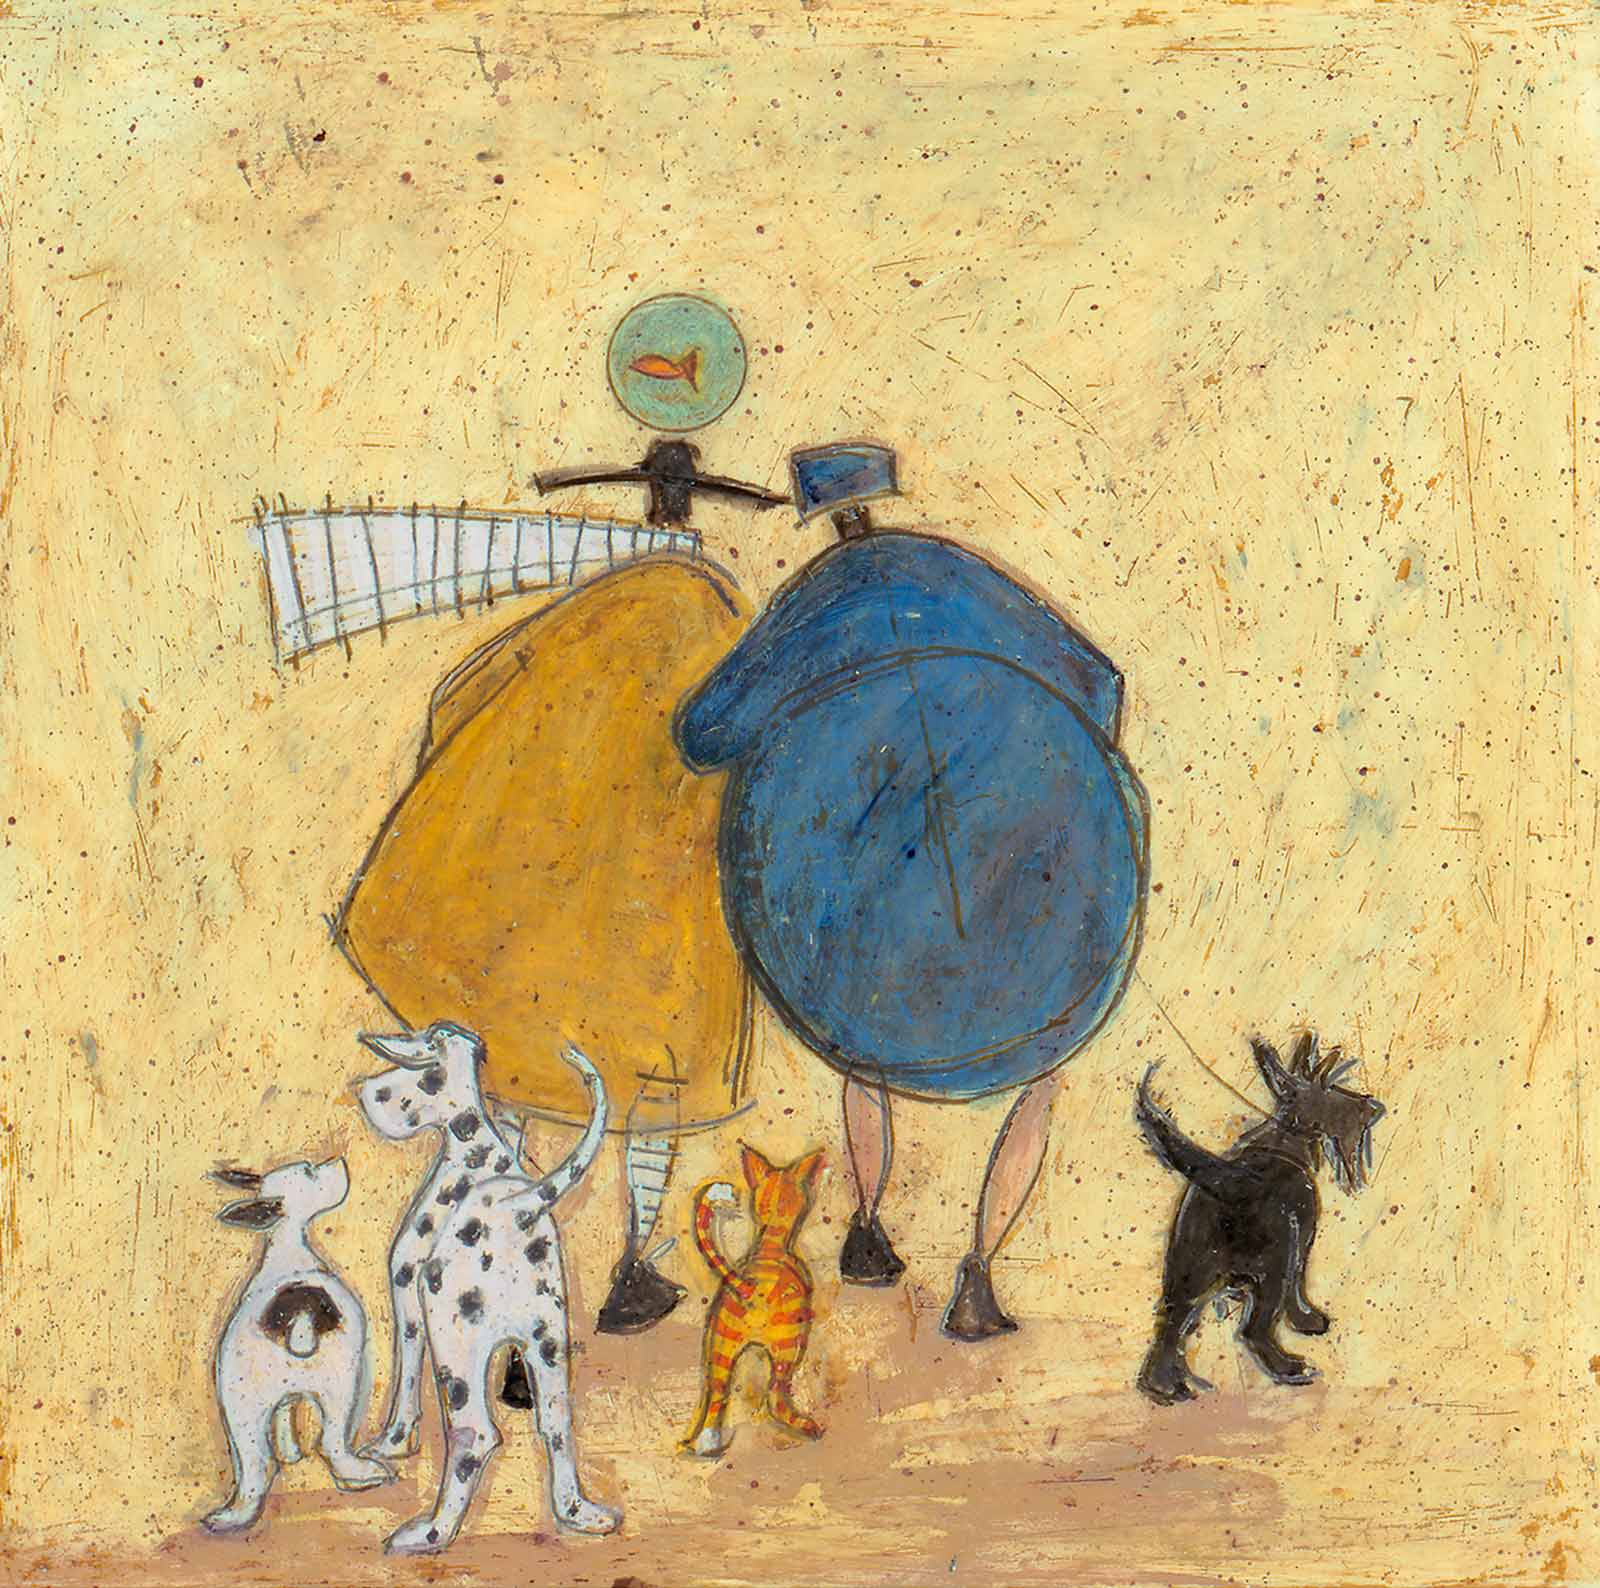 Days Out With Friends, Sam Toft